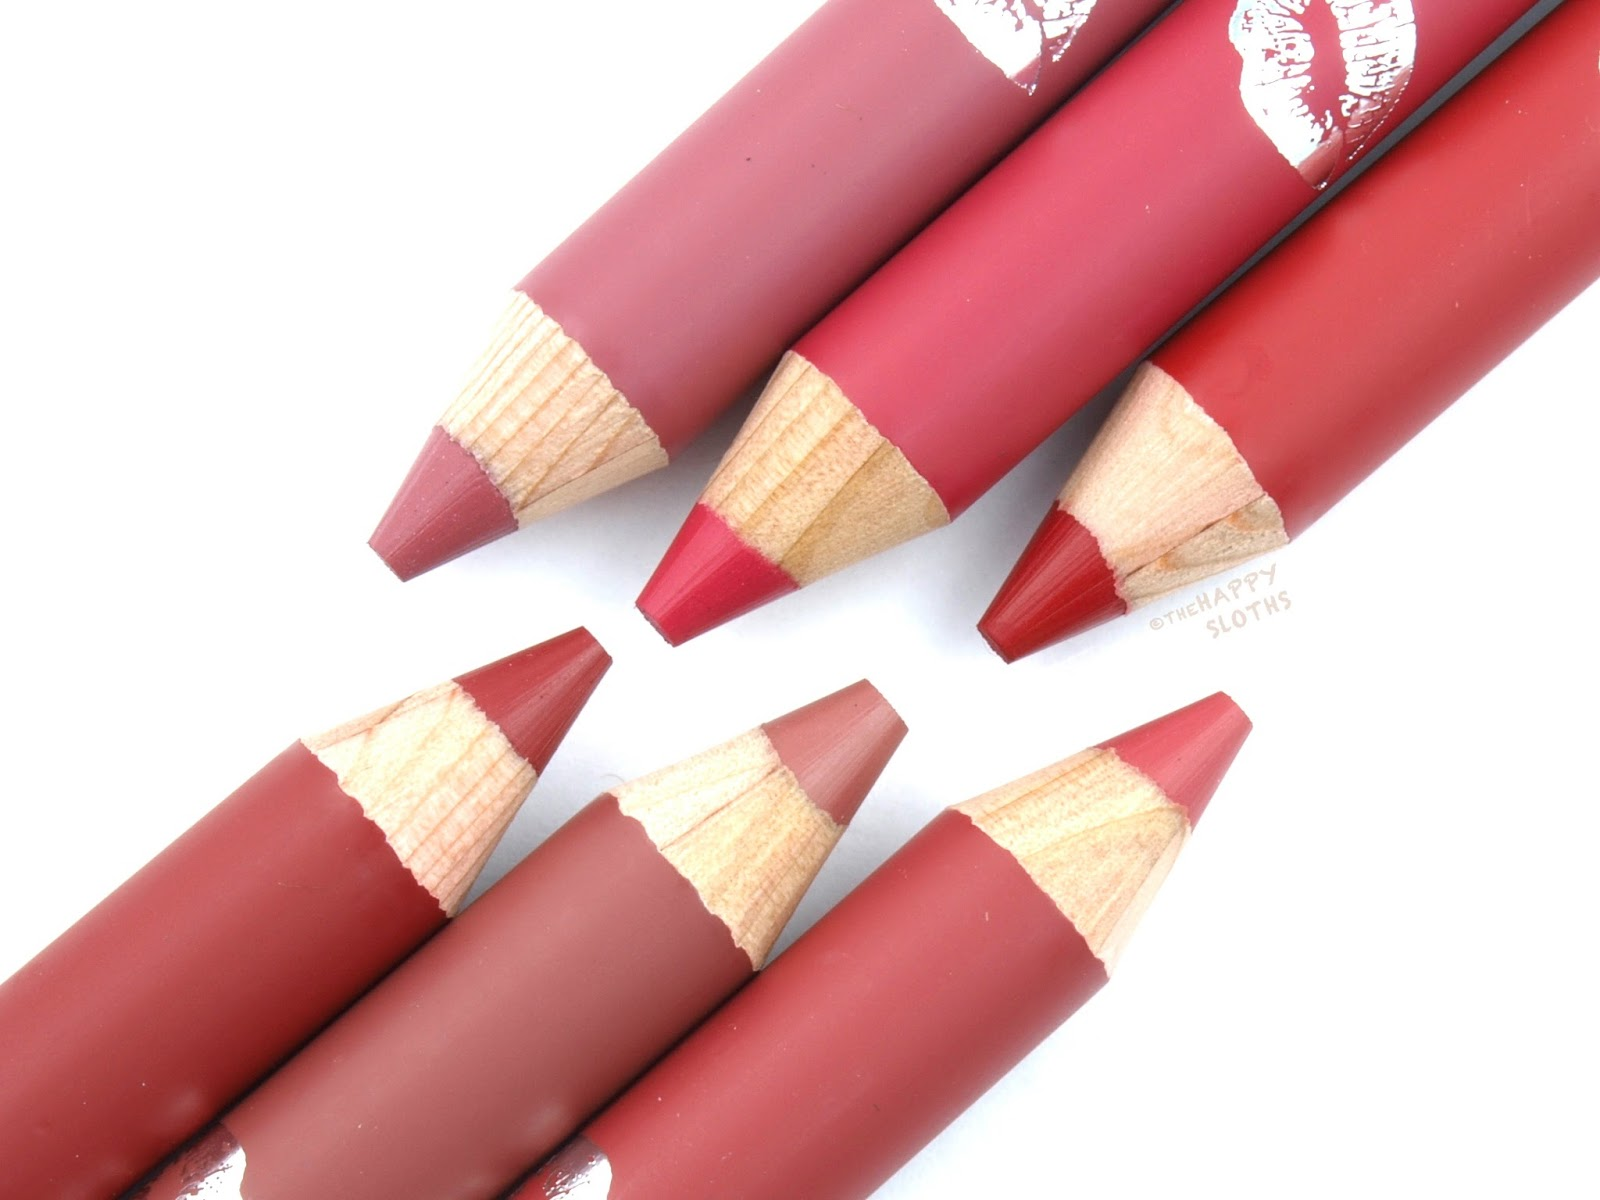 Buxom Plumpline Lip Liner: Review and Swatches